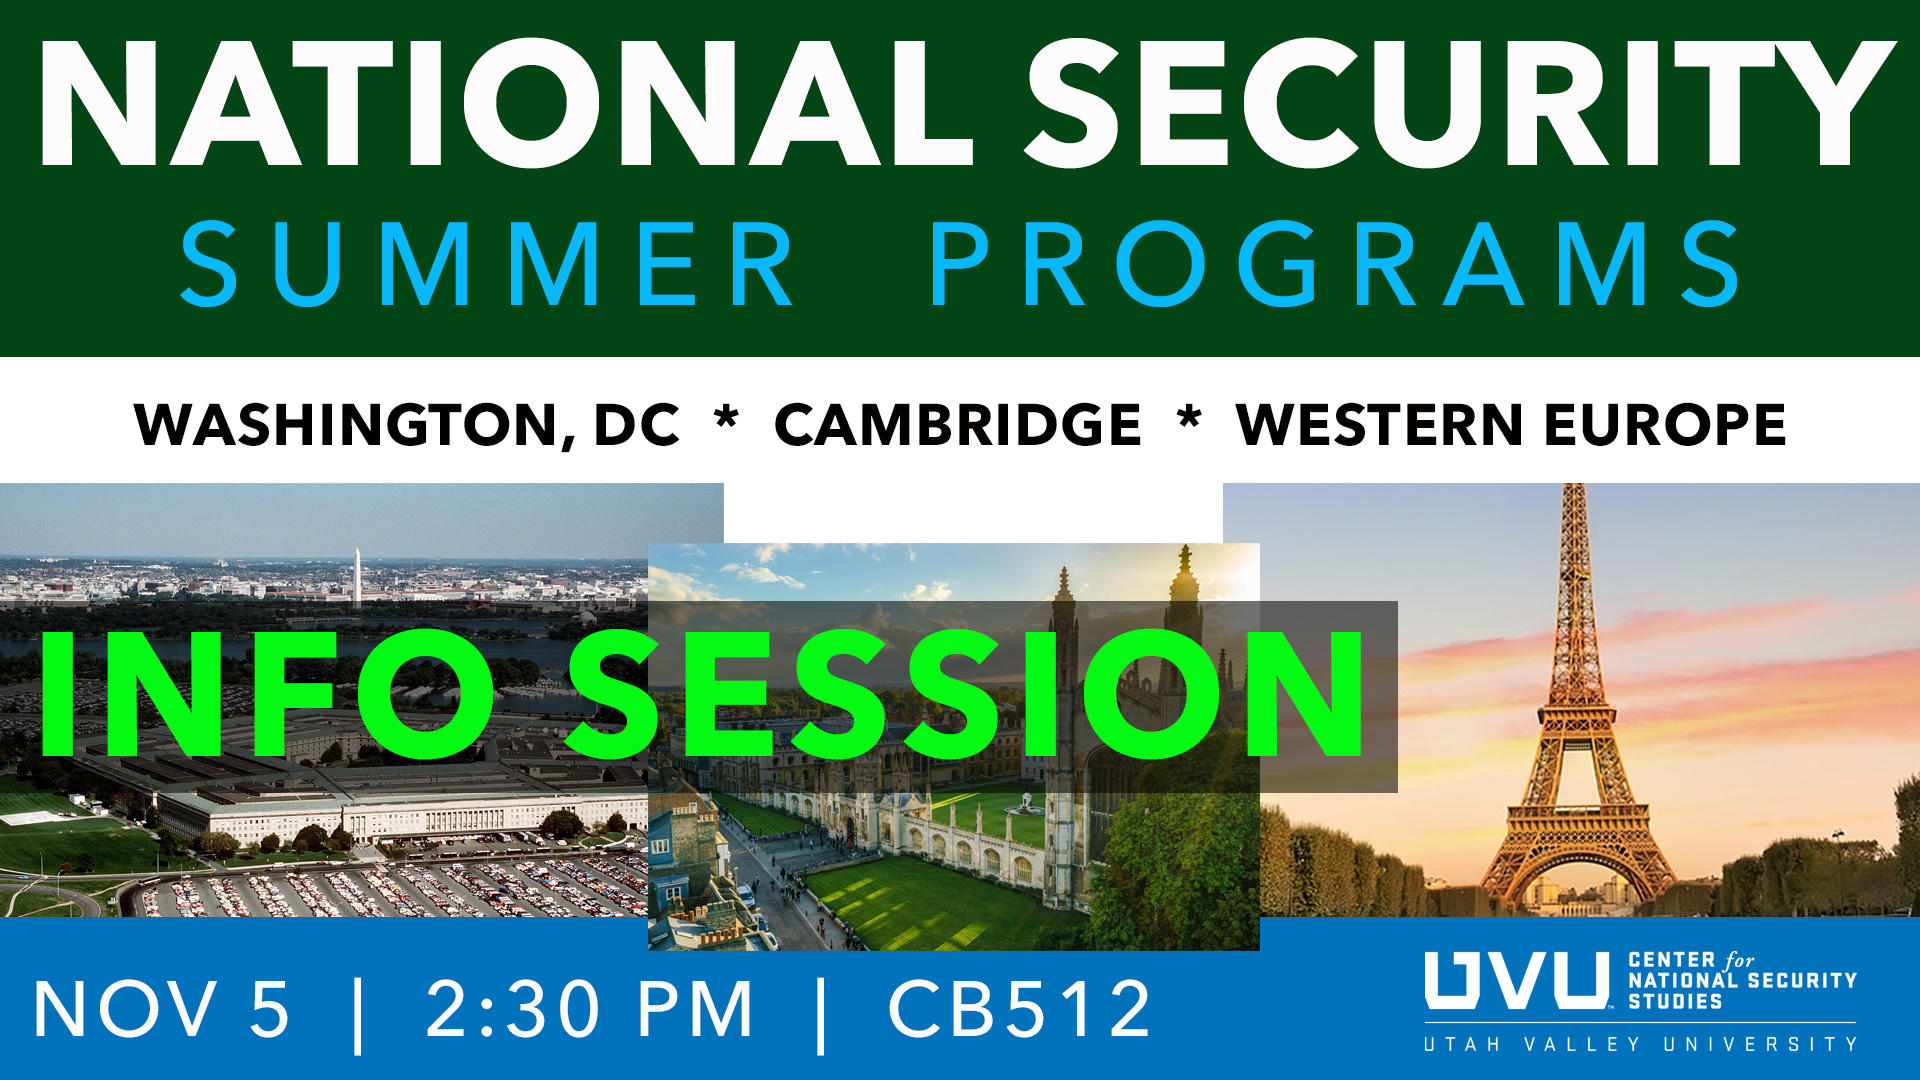 Uvu 2020 Summer Schedule.Nss Events Center For National Security Studies Utah